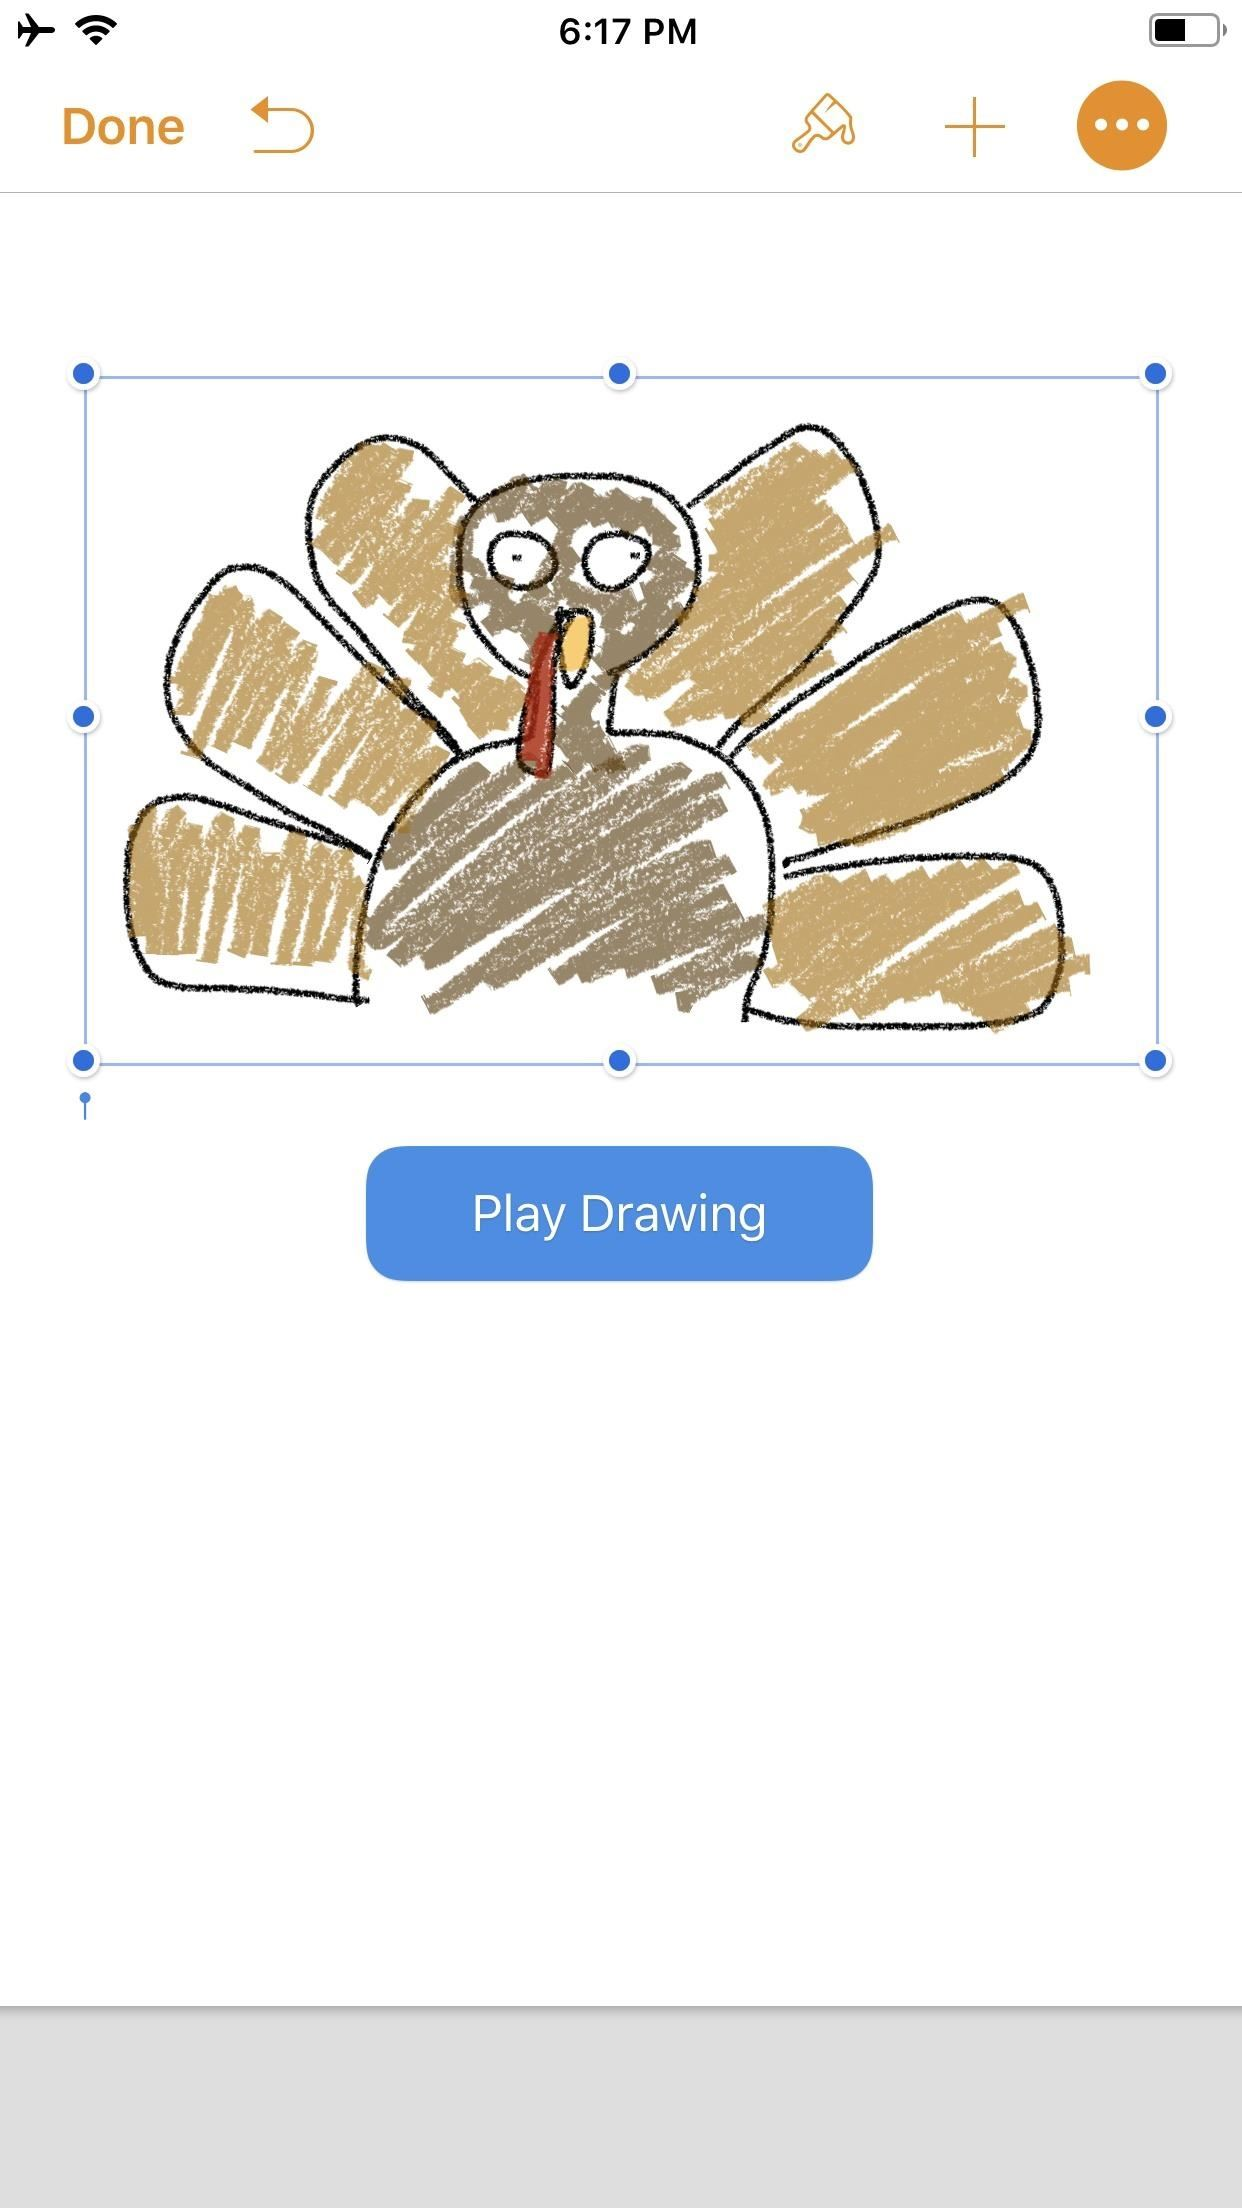 How to animate and share drawings on your iPhone without any third party programs